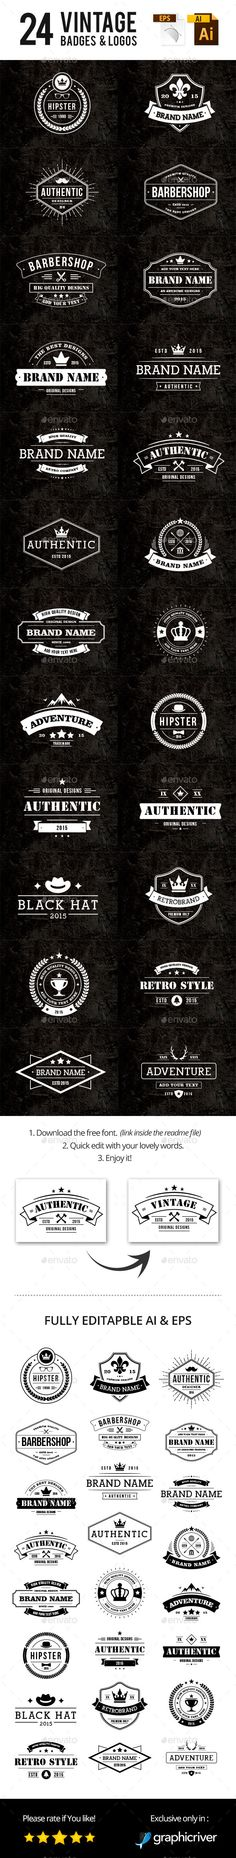 24 Vintage Badges & Logos #design Download…